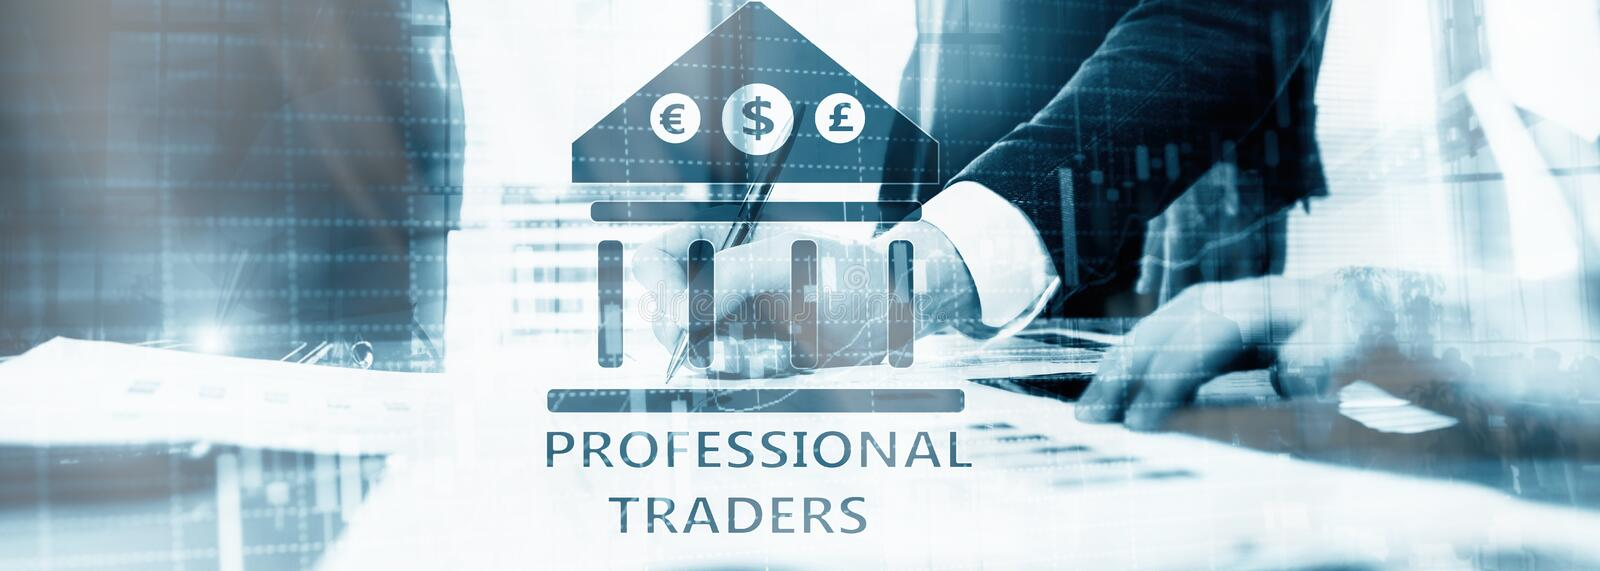 Inscription on the virtual screen: Professional Traders. Abstract Finance Background. Signing a contract stock photography